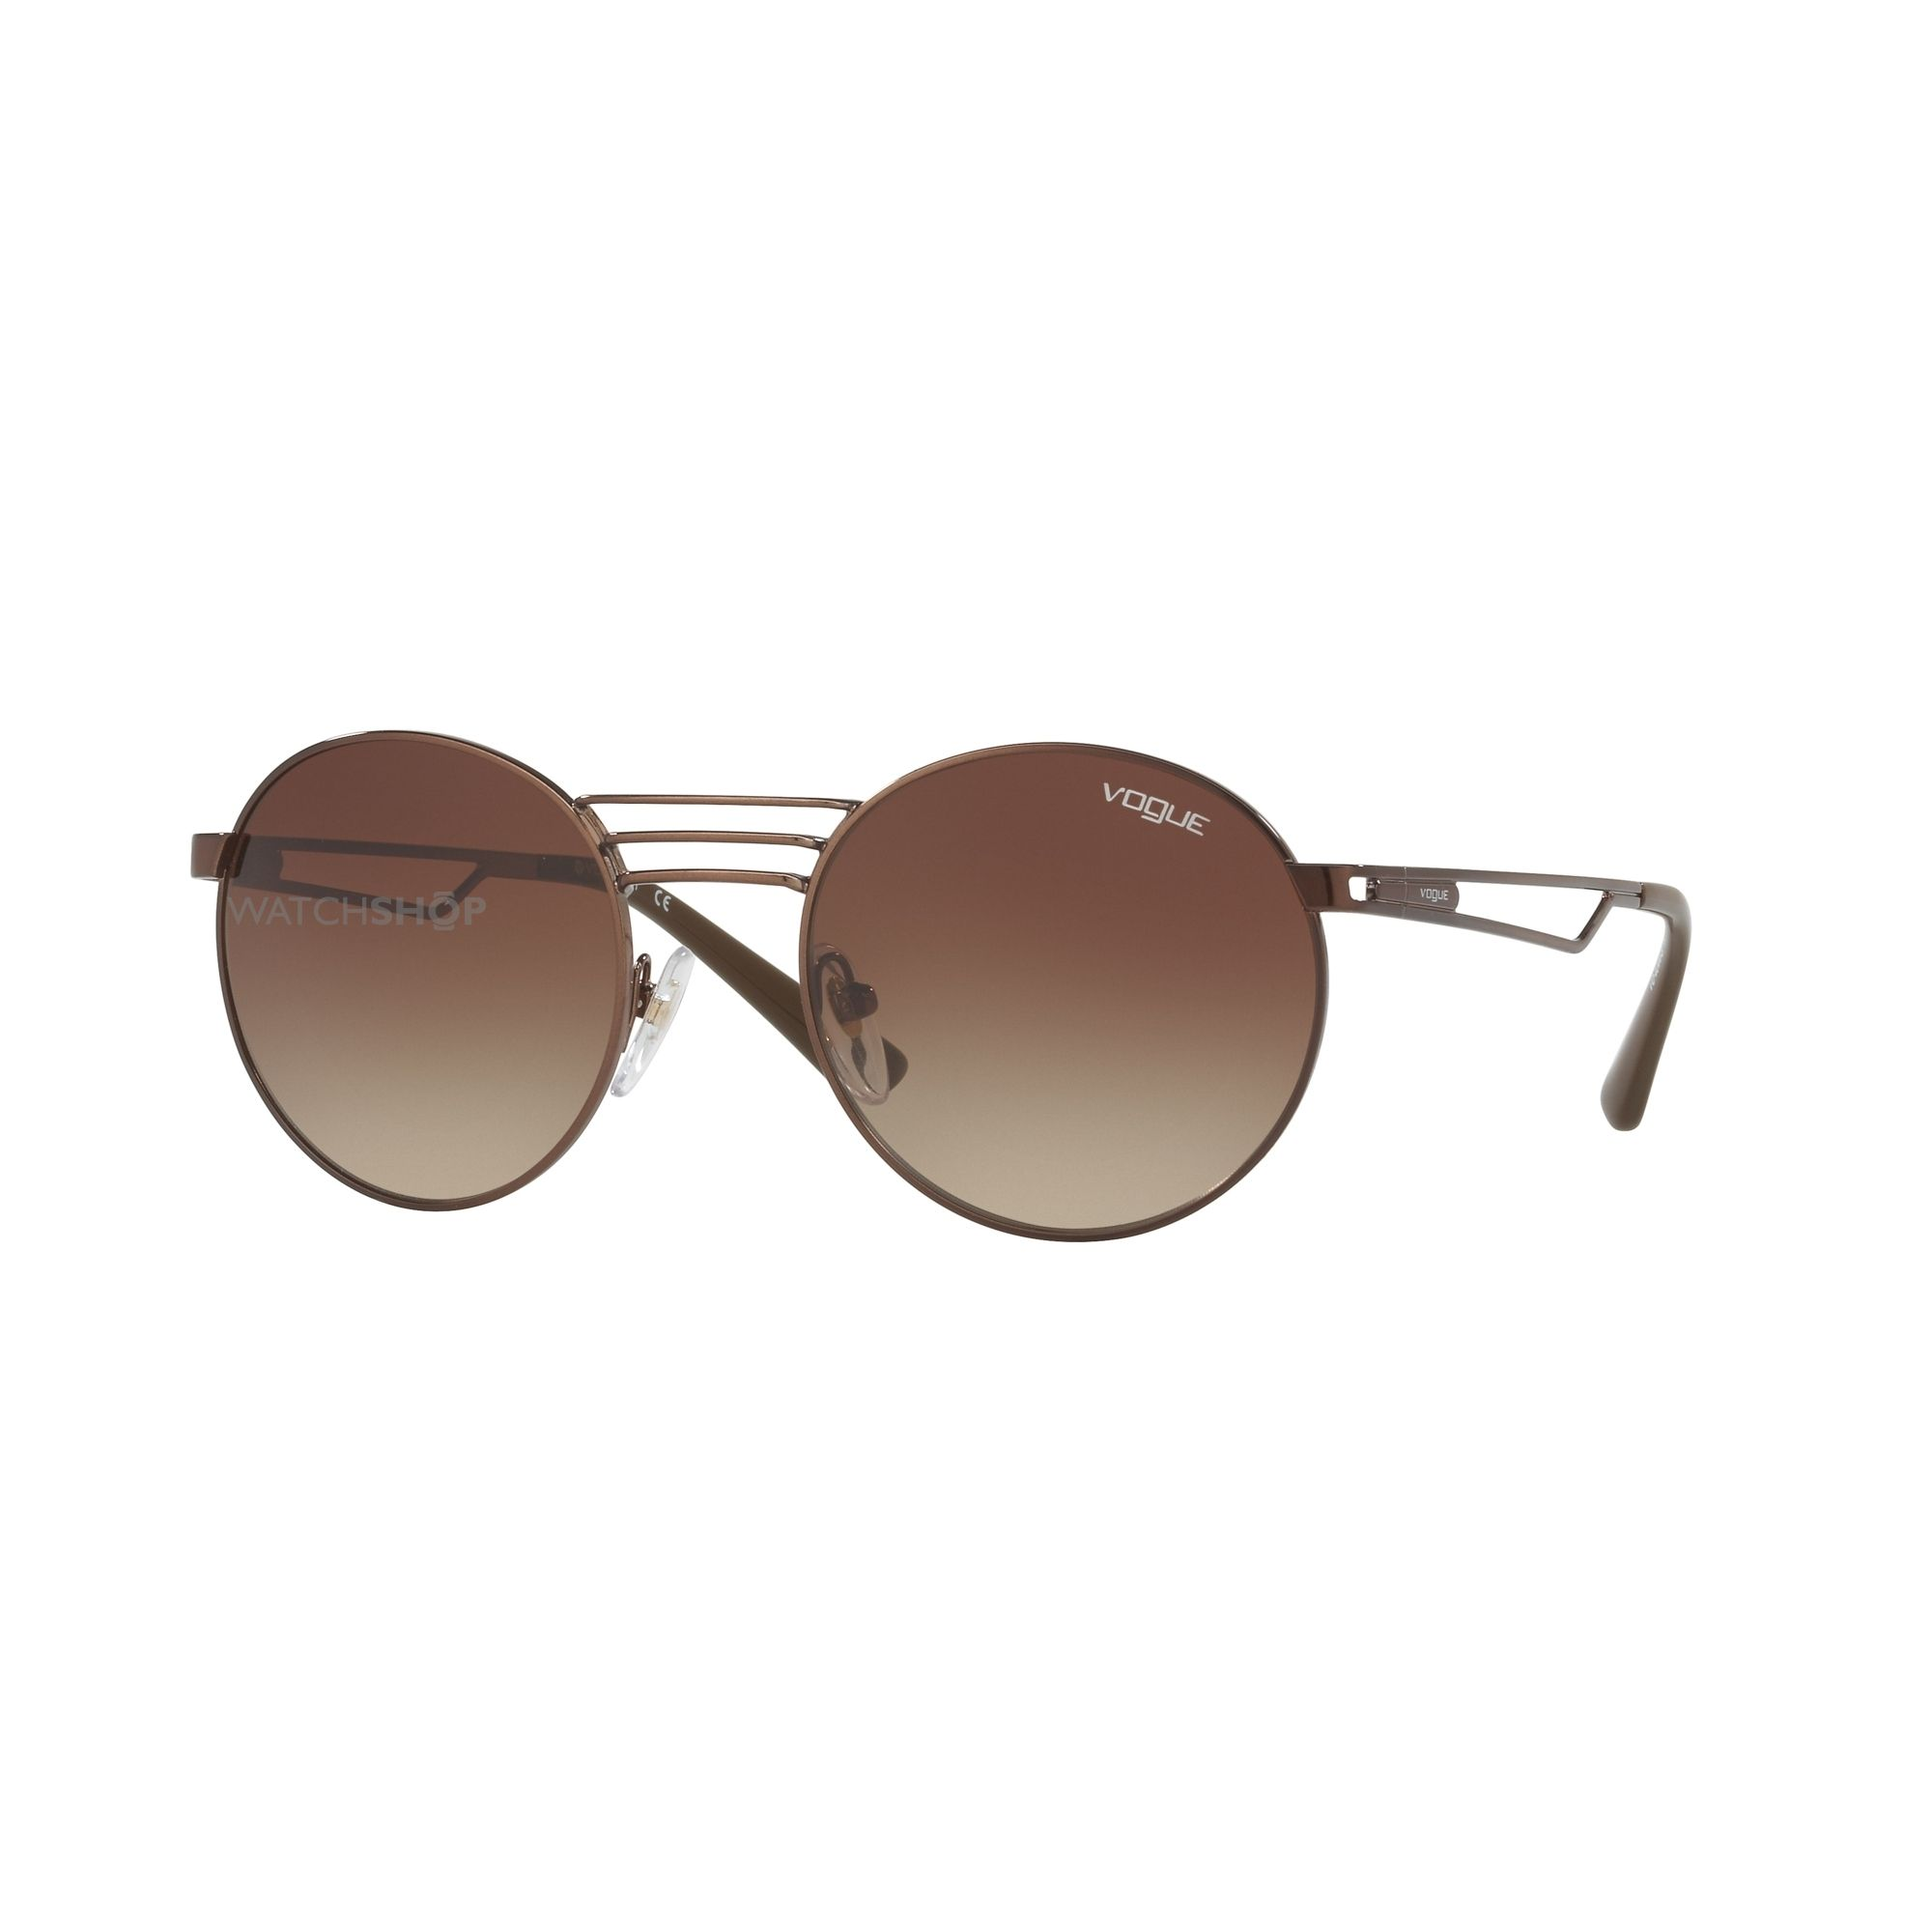 Vogues VO4044s sunglasses